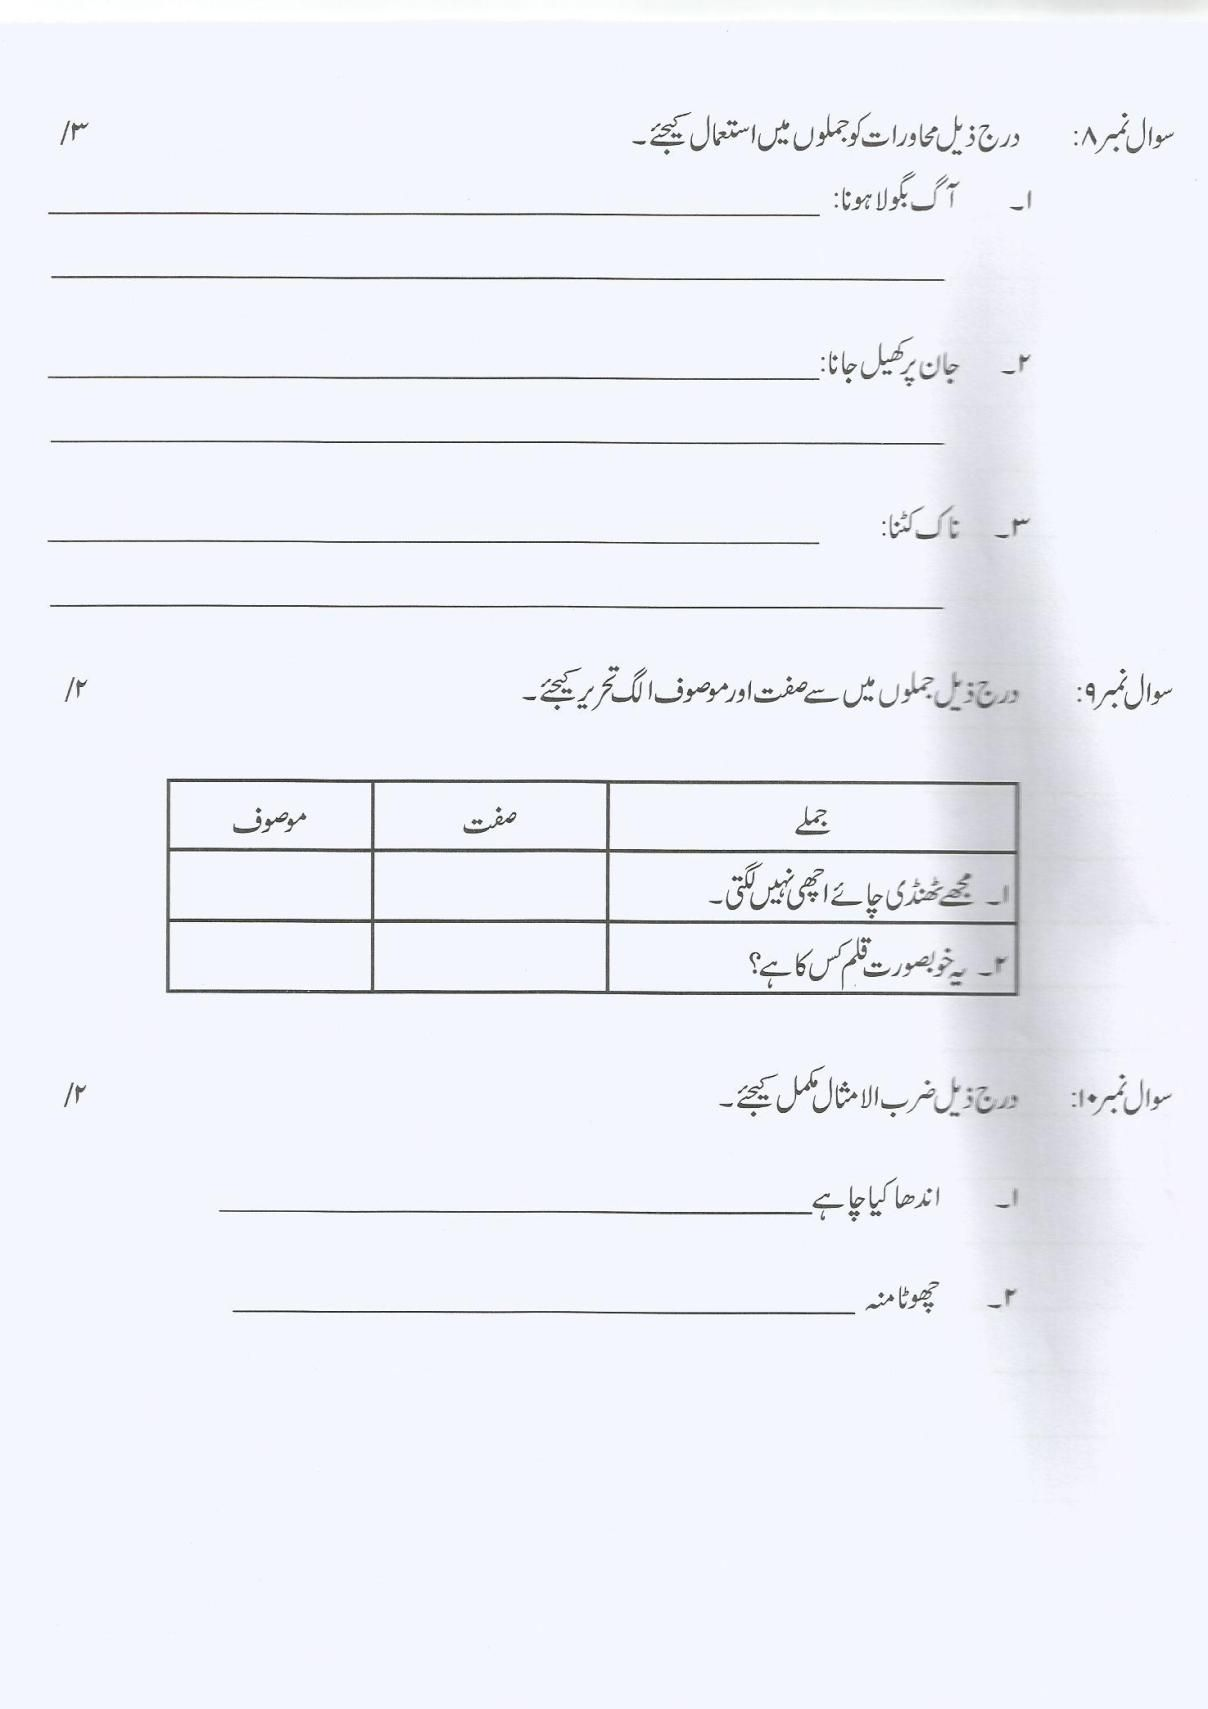 medium resolution of Urdu Tenses Worksheet For Grade 6   Printable Worksheets and Activities for  Teachers